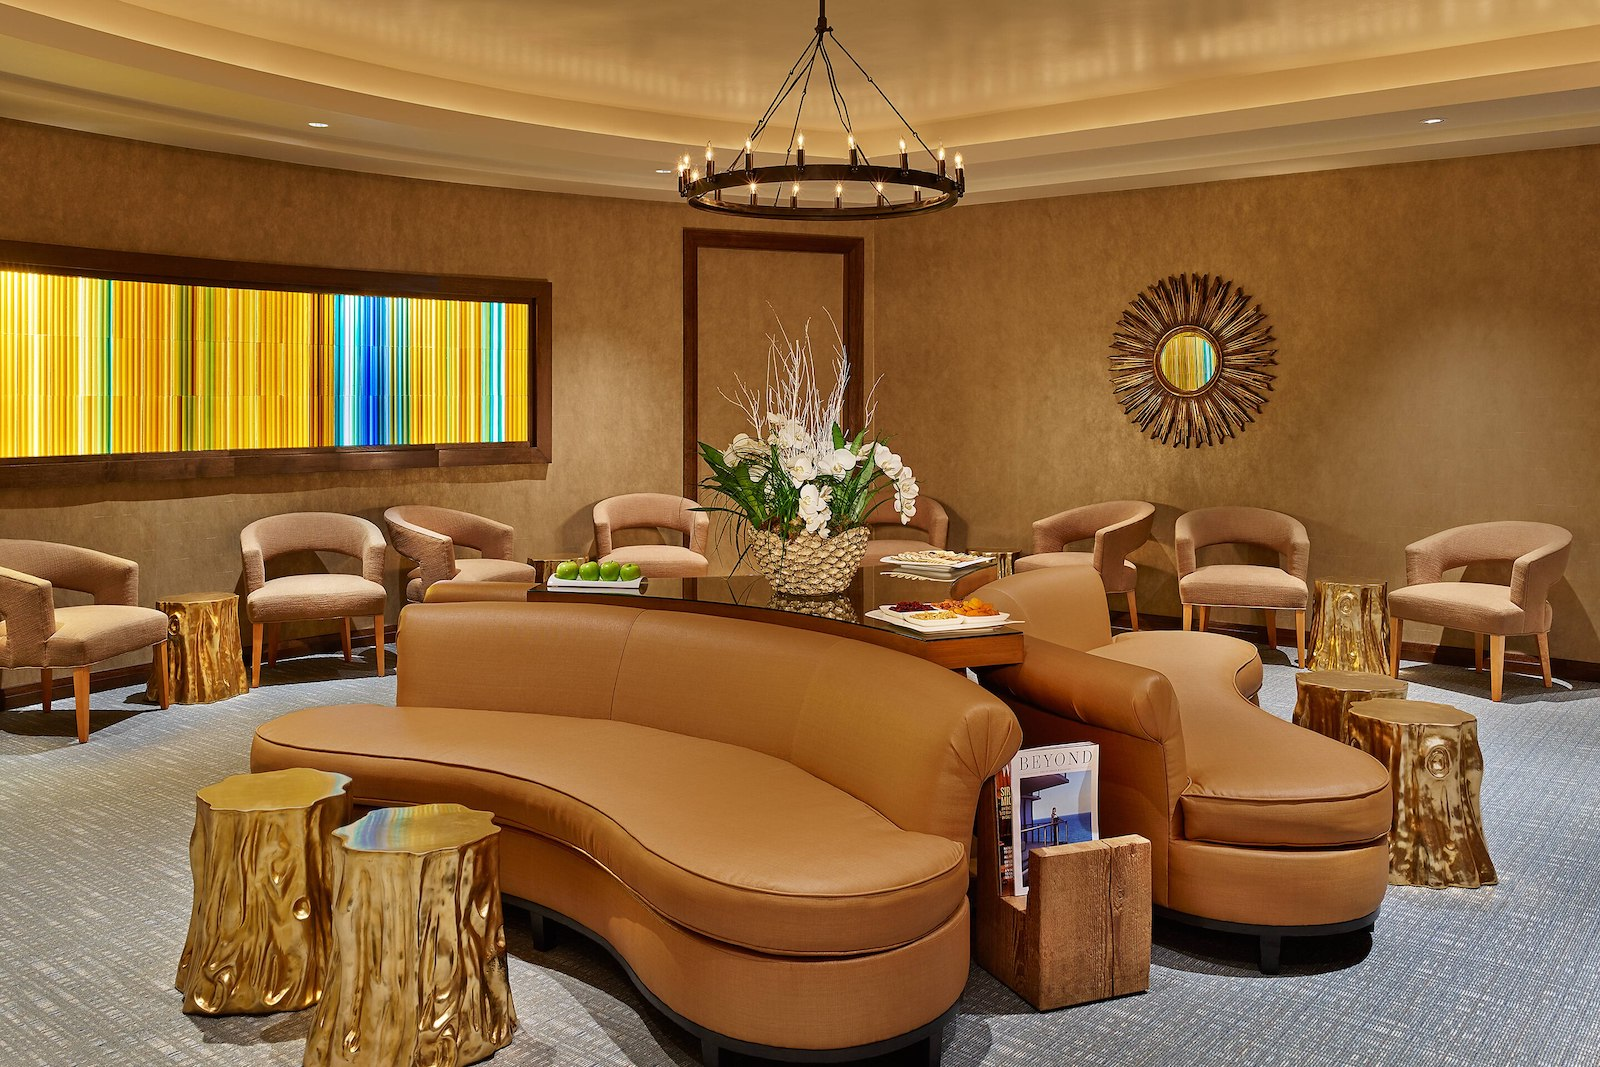 Image of the Relaxation Lounge at that St. Regis in Aspen, Colorado